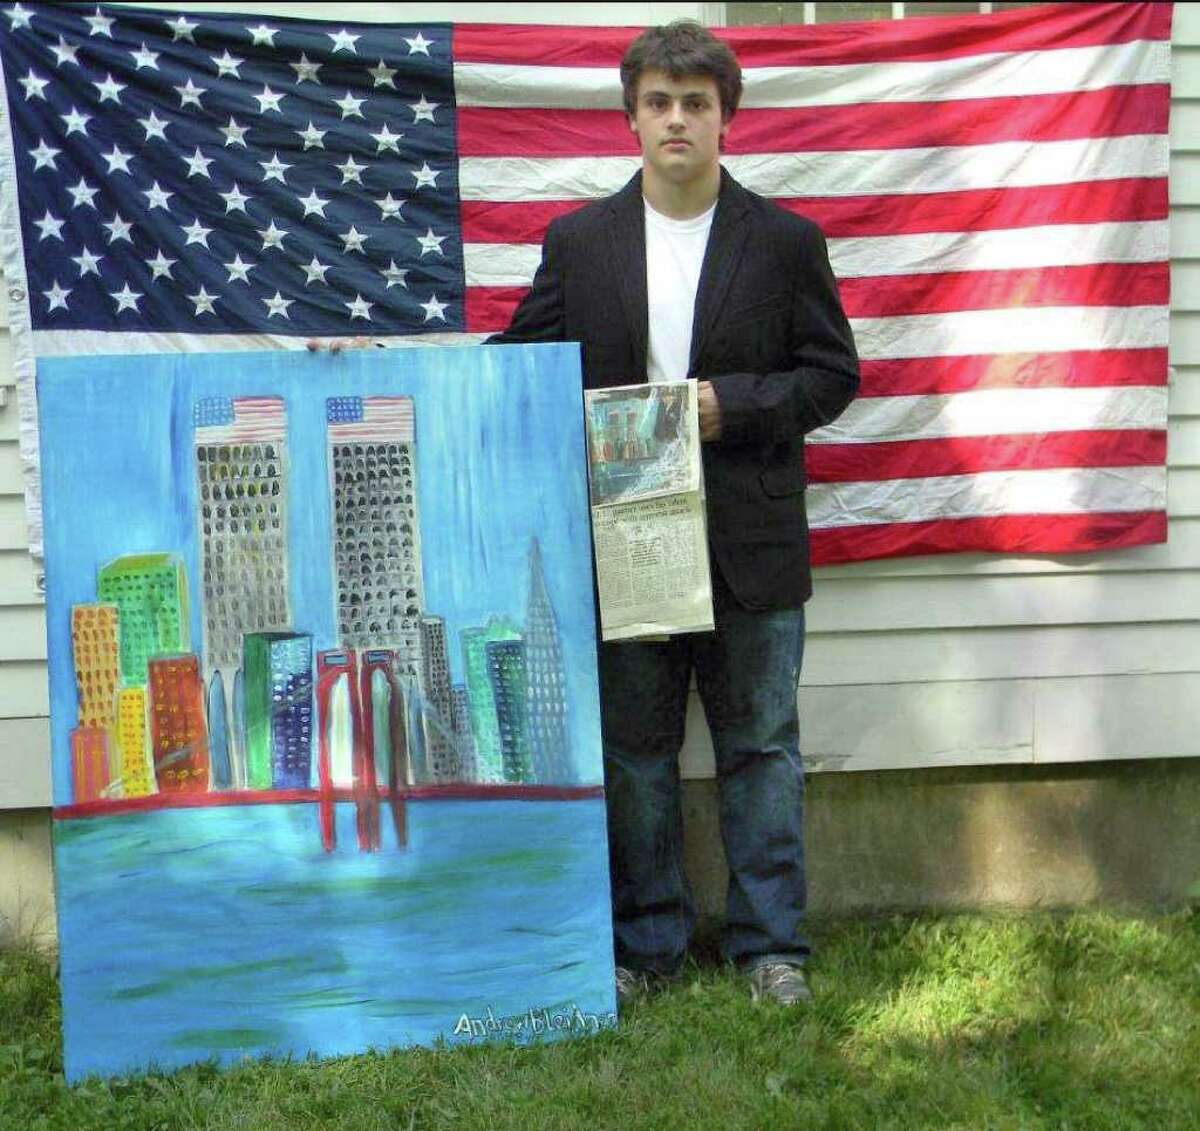 Pomperaug High senior Andrew Bleidner was just 8 years old when he captured a nation's heartache on canvas following the Sept. 11 terrorist attacks. Next month, his World Trade Center painting will be displayed at the Helvrich Hotel in New Brunswick, N.J.